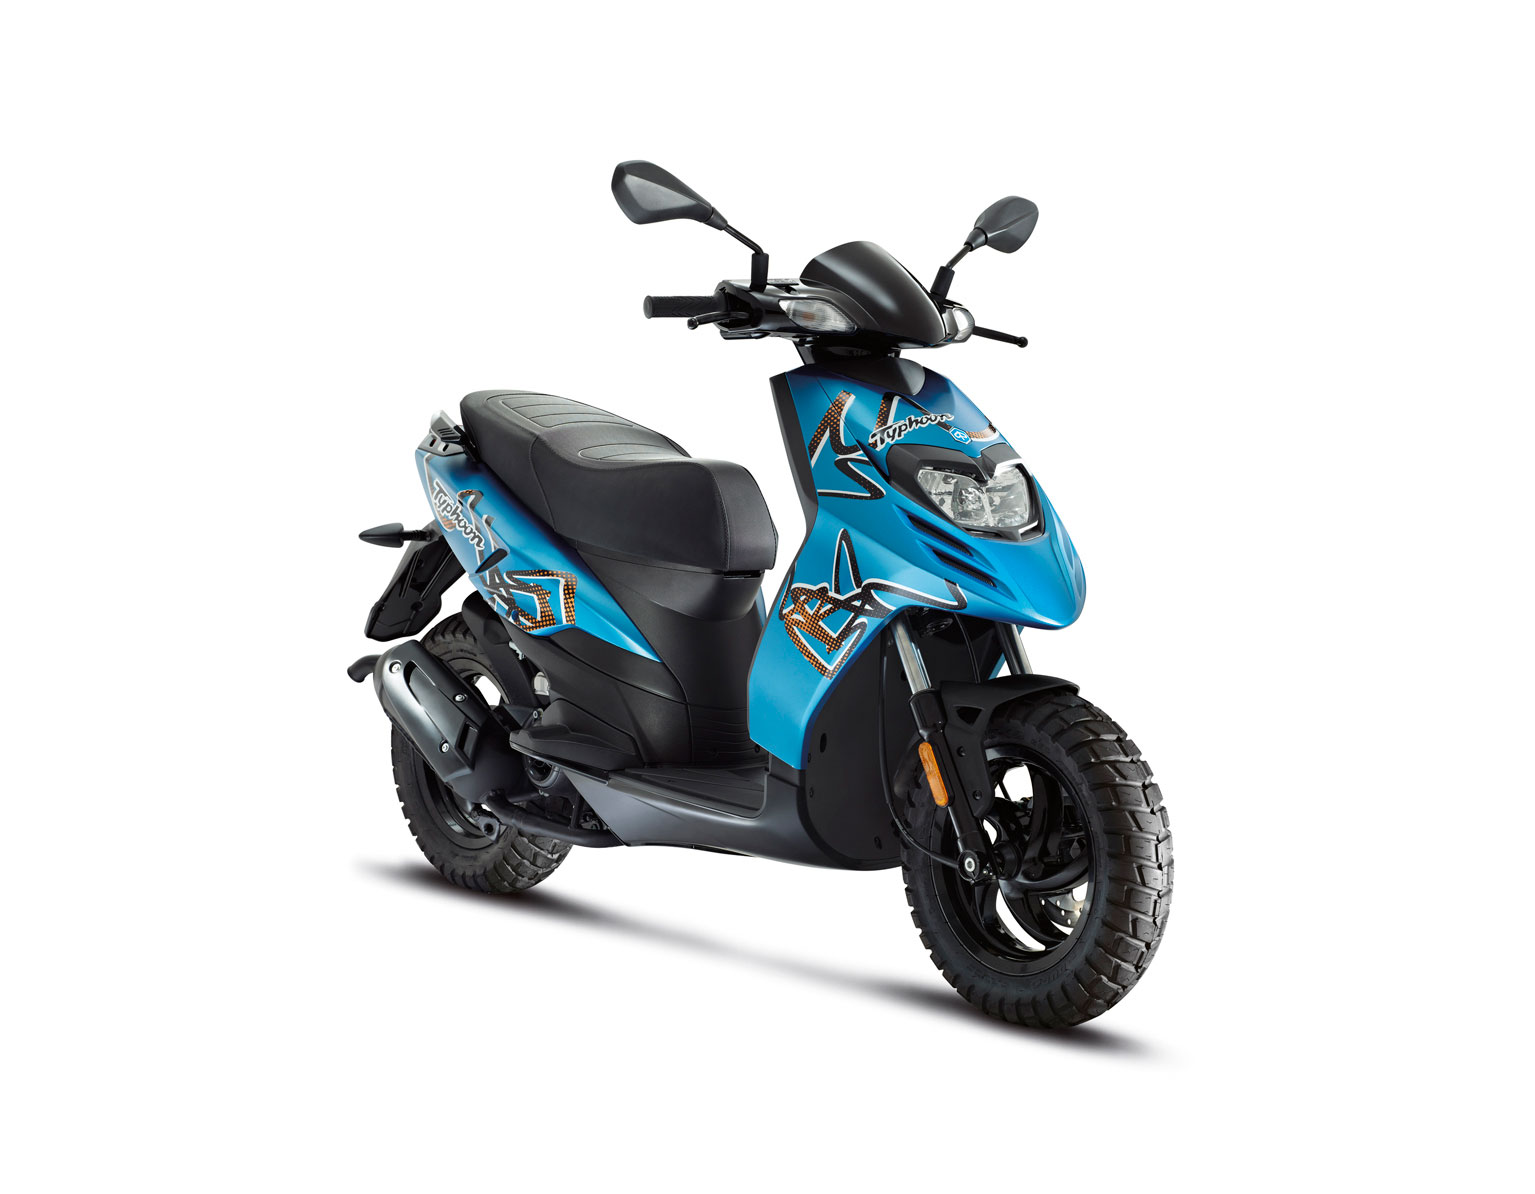 2014 piaggio typhoon 50 review